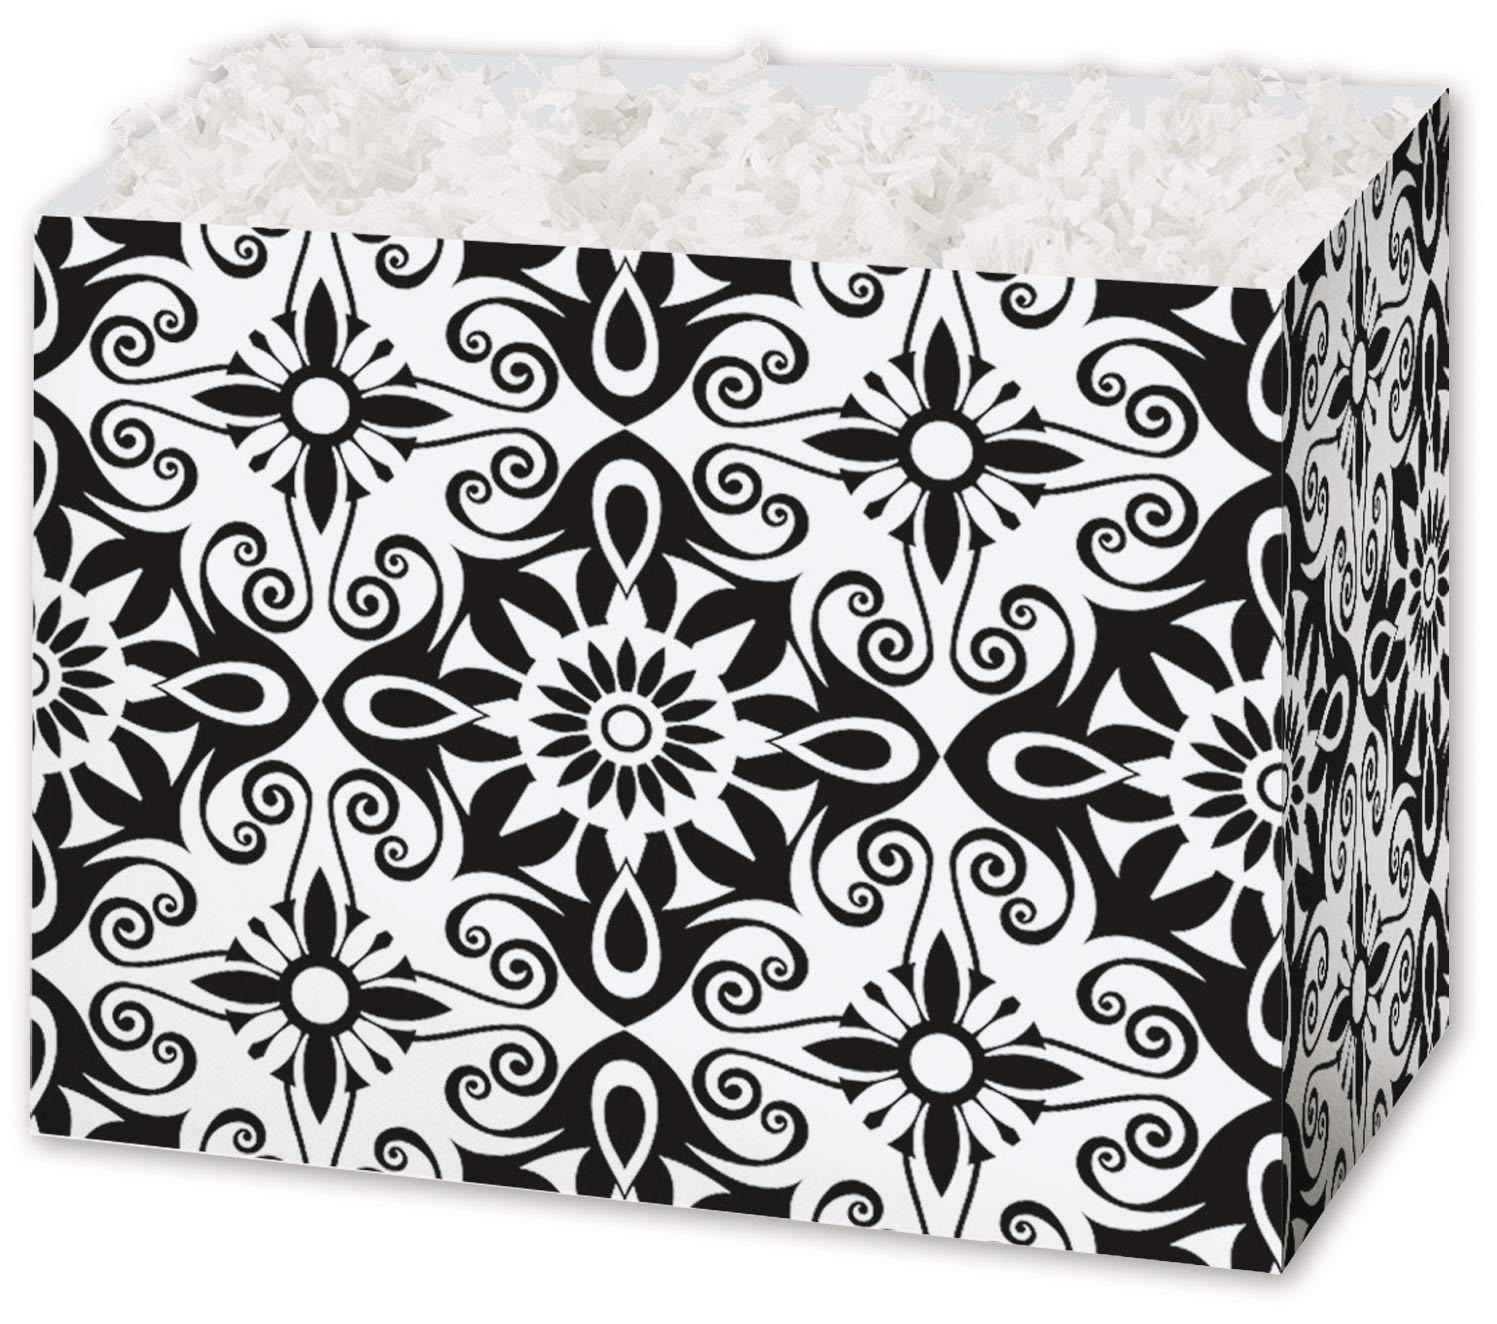 """Patterned Specialty & Event Boxes - Black & White Medallions Gift Basket Boxes, 6 3/4 x 4 x 5"""" (6 Boxes) - BOWS-4917BWMD"""